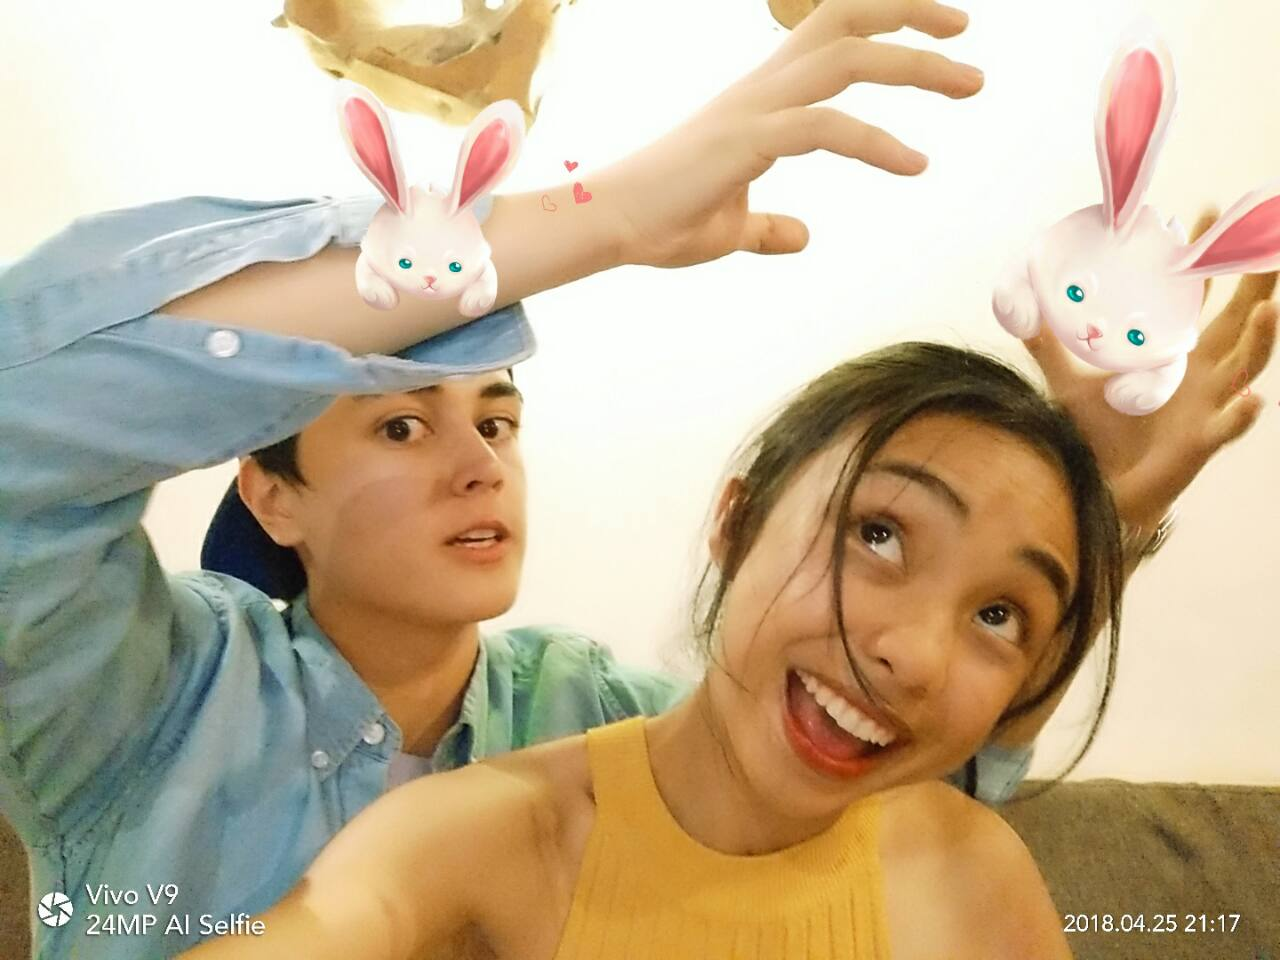 MayWard Goes GaGa on the Vivo V9 AR Sticker App